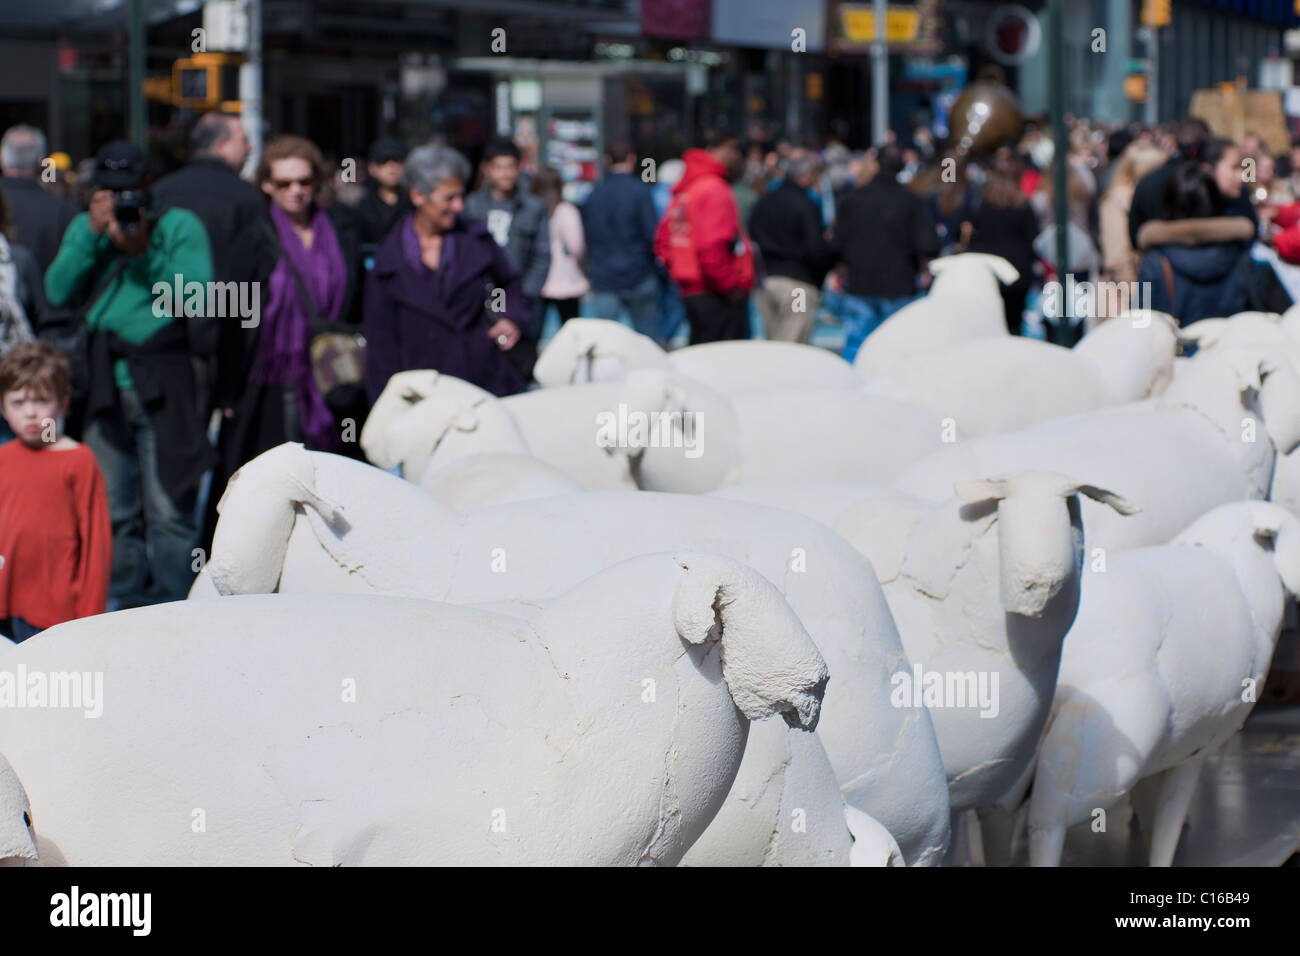 'Counting Sheep' by the artist Kyu Seok Oh in Times Square in New York - Stock Image